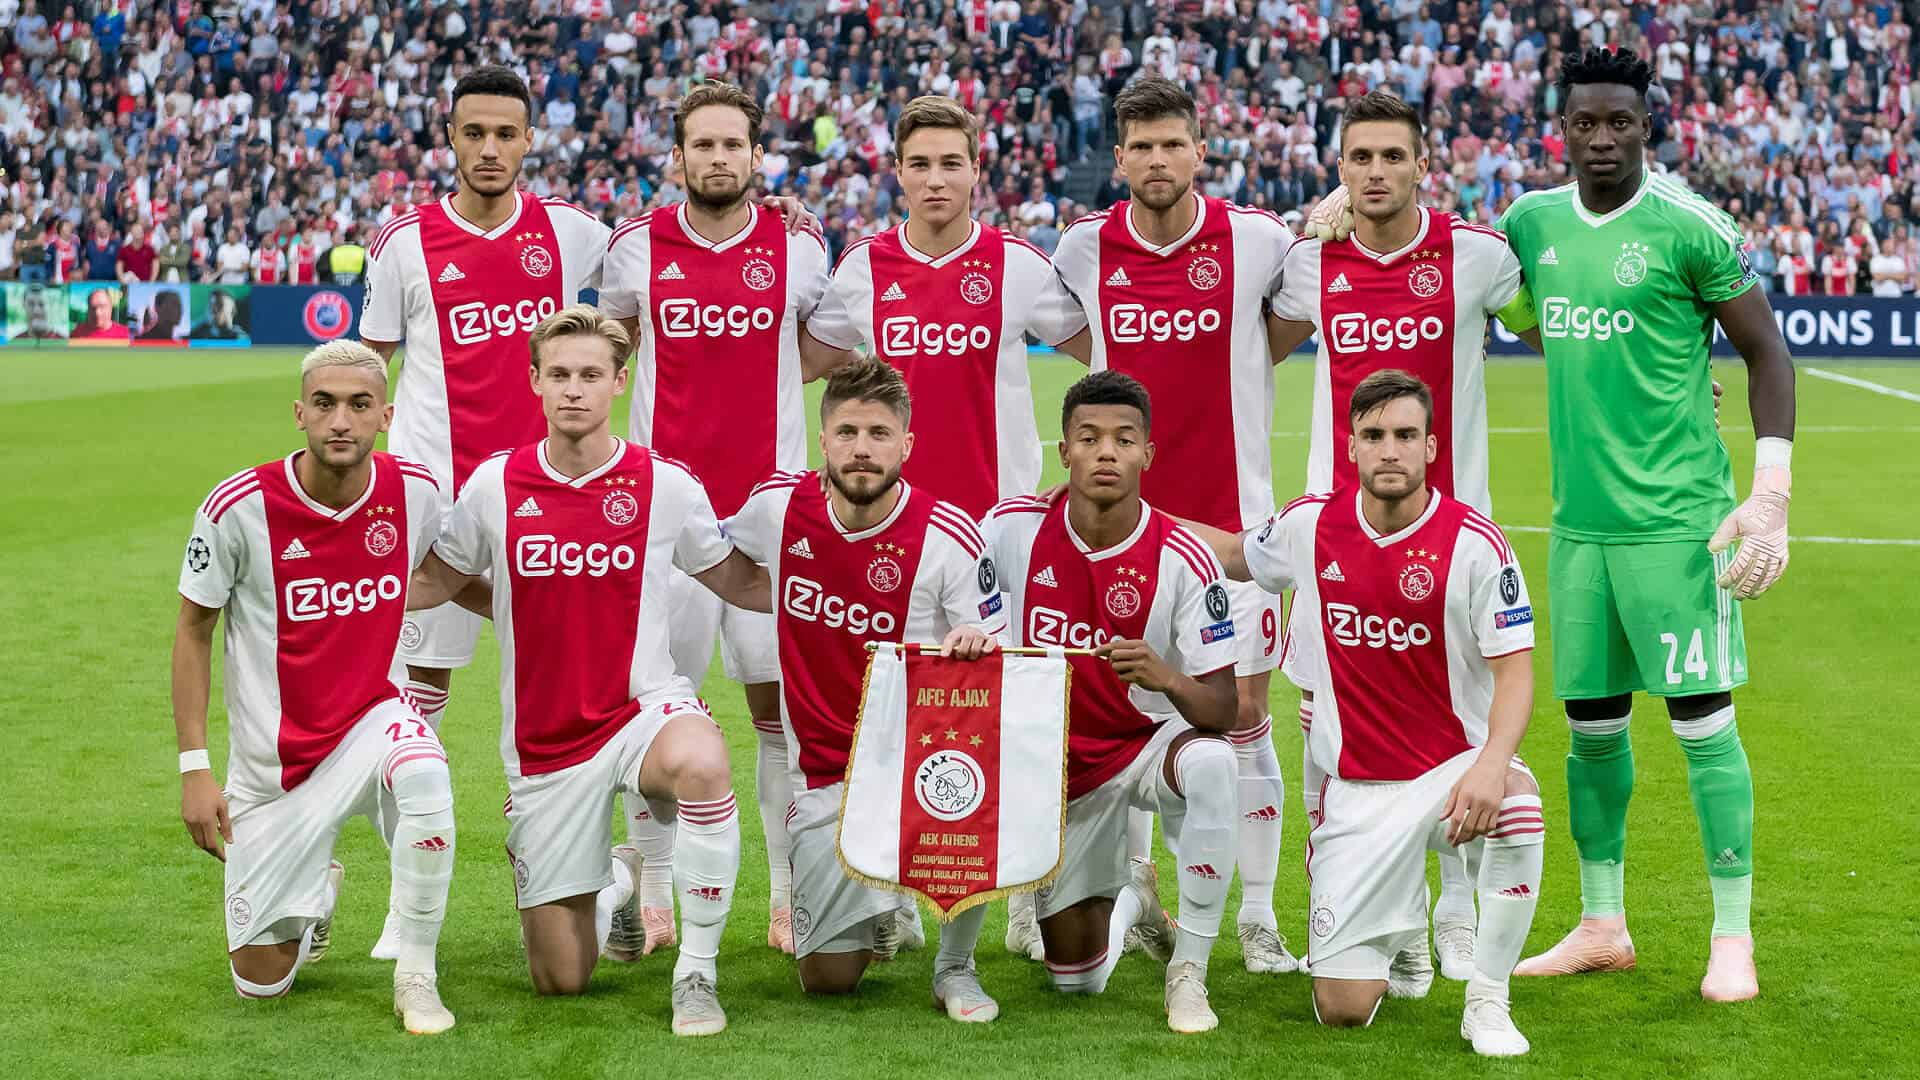 AJAX football team 2019